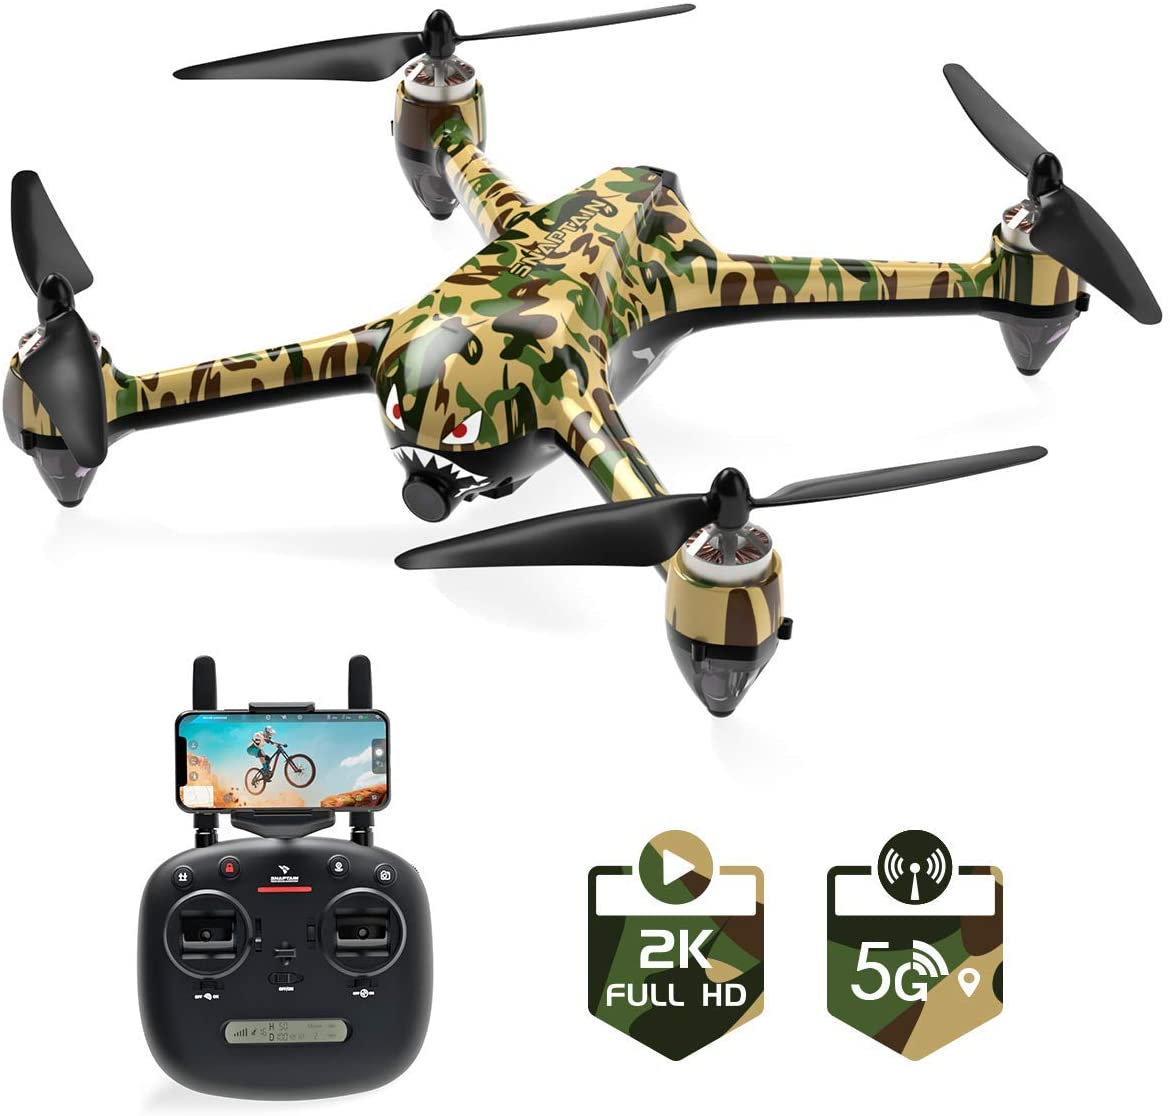 SNAPTAIN SP700 GPS Drone with Brushless Motor, 5G WiFi FPV RC Drone for Adult with 2K Camera Live Video, Follow Me, APP Control, GPS RTH, Circle Fly, Point of Interest, Module Battery - Rite